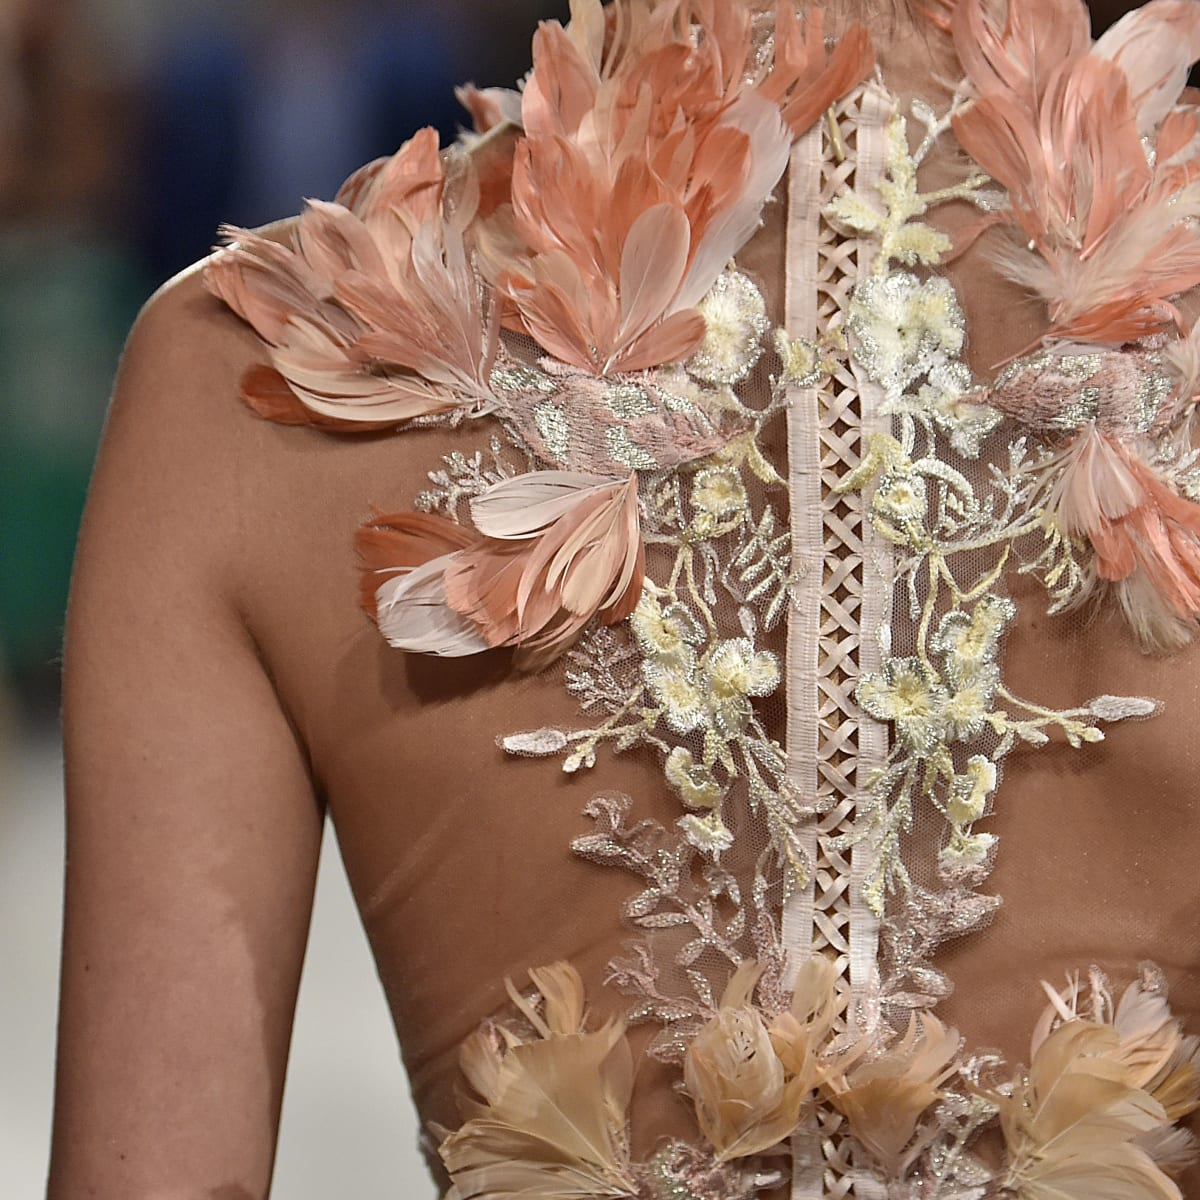 Marchesa spring 2016 collection from back view